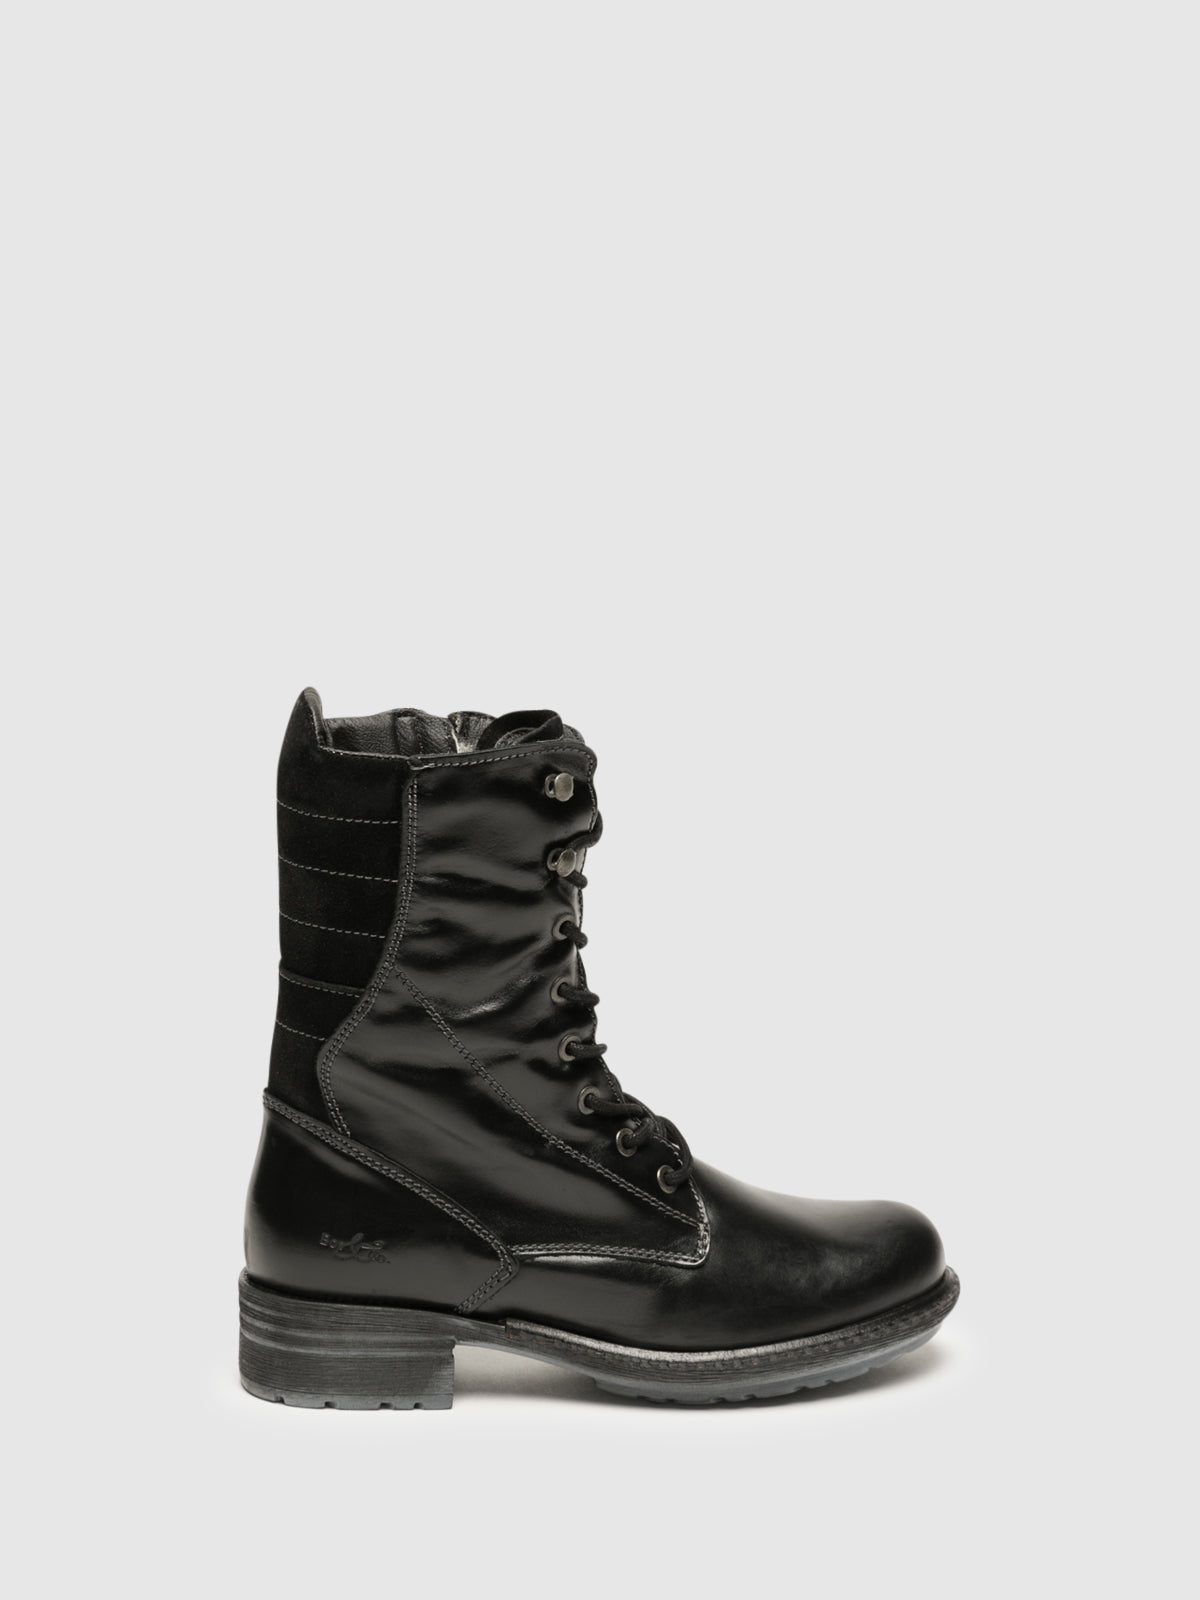 Bos&Co Black Lace-up Ankle Boots